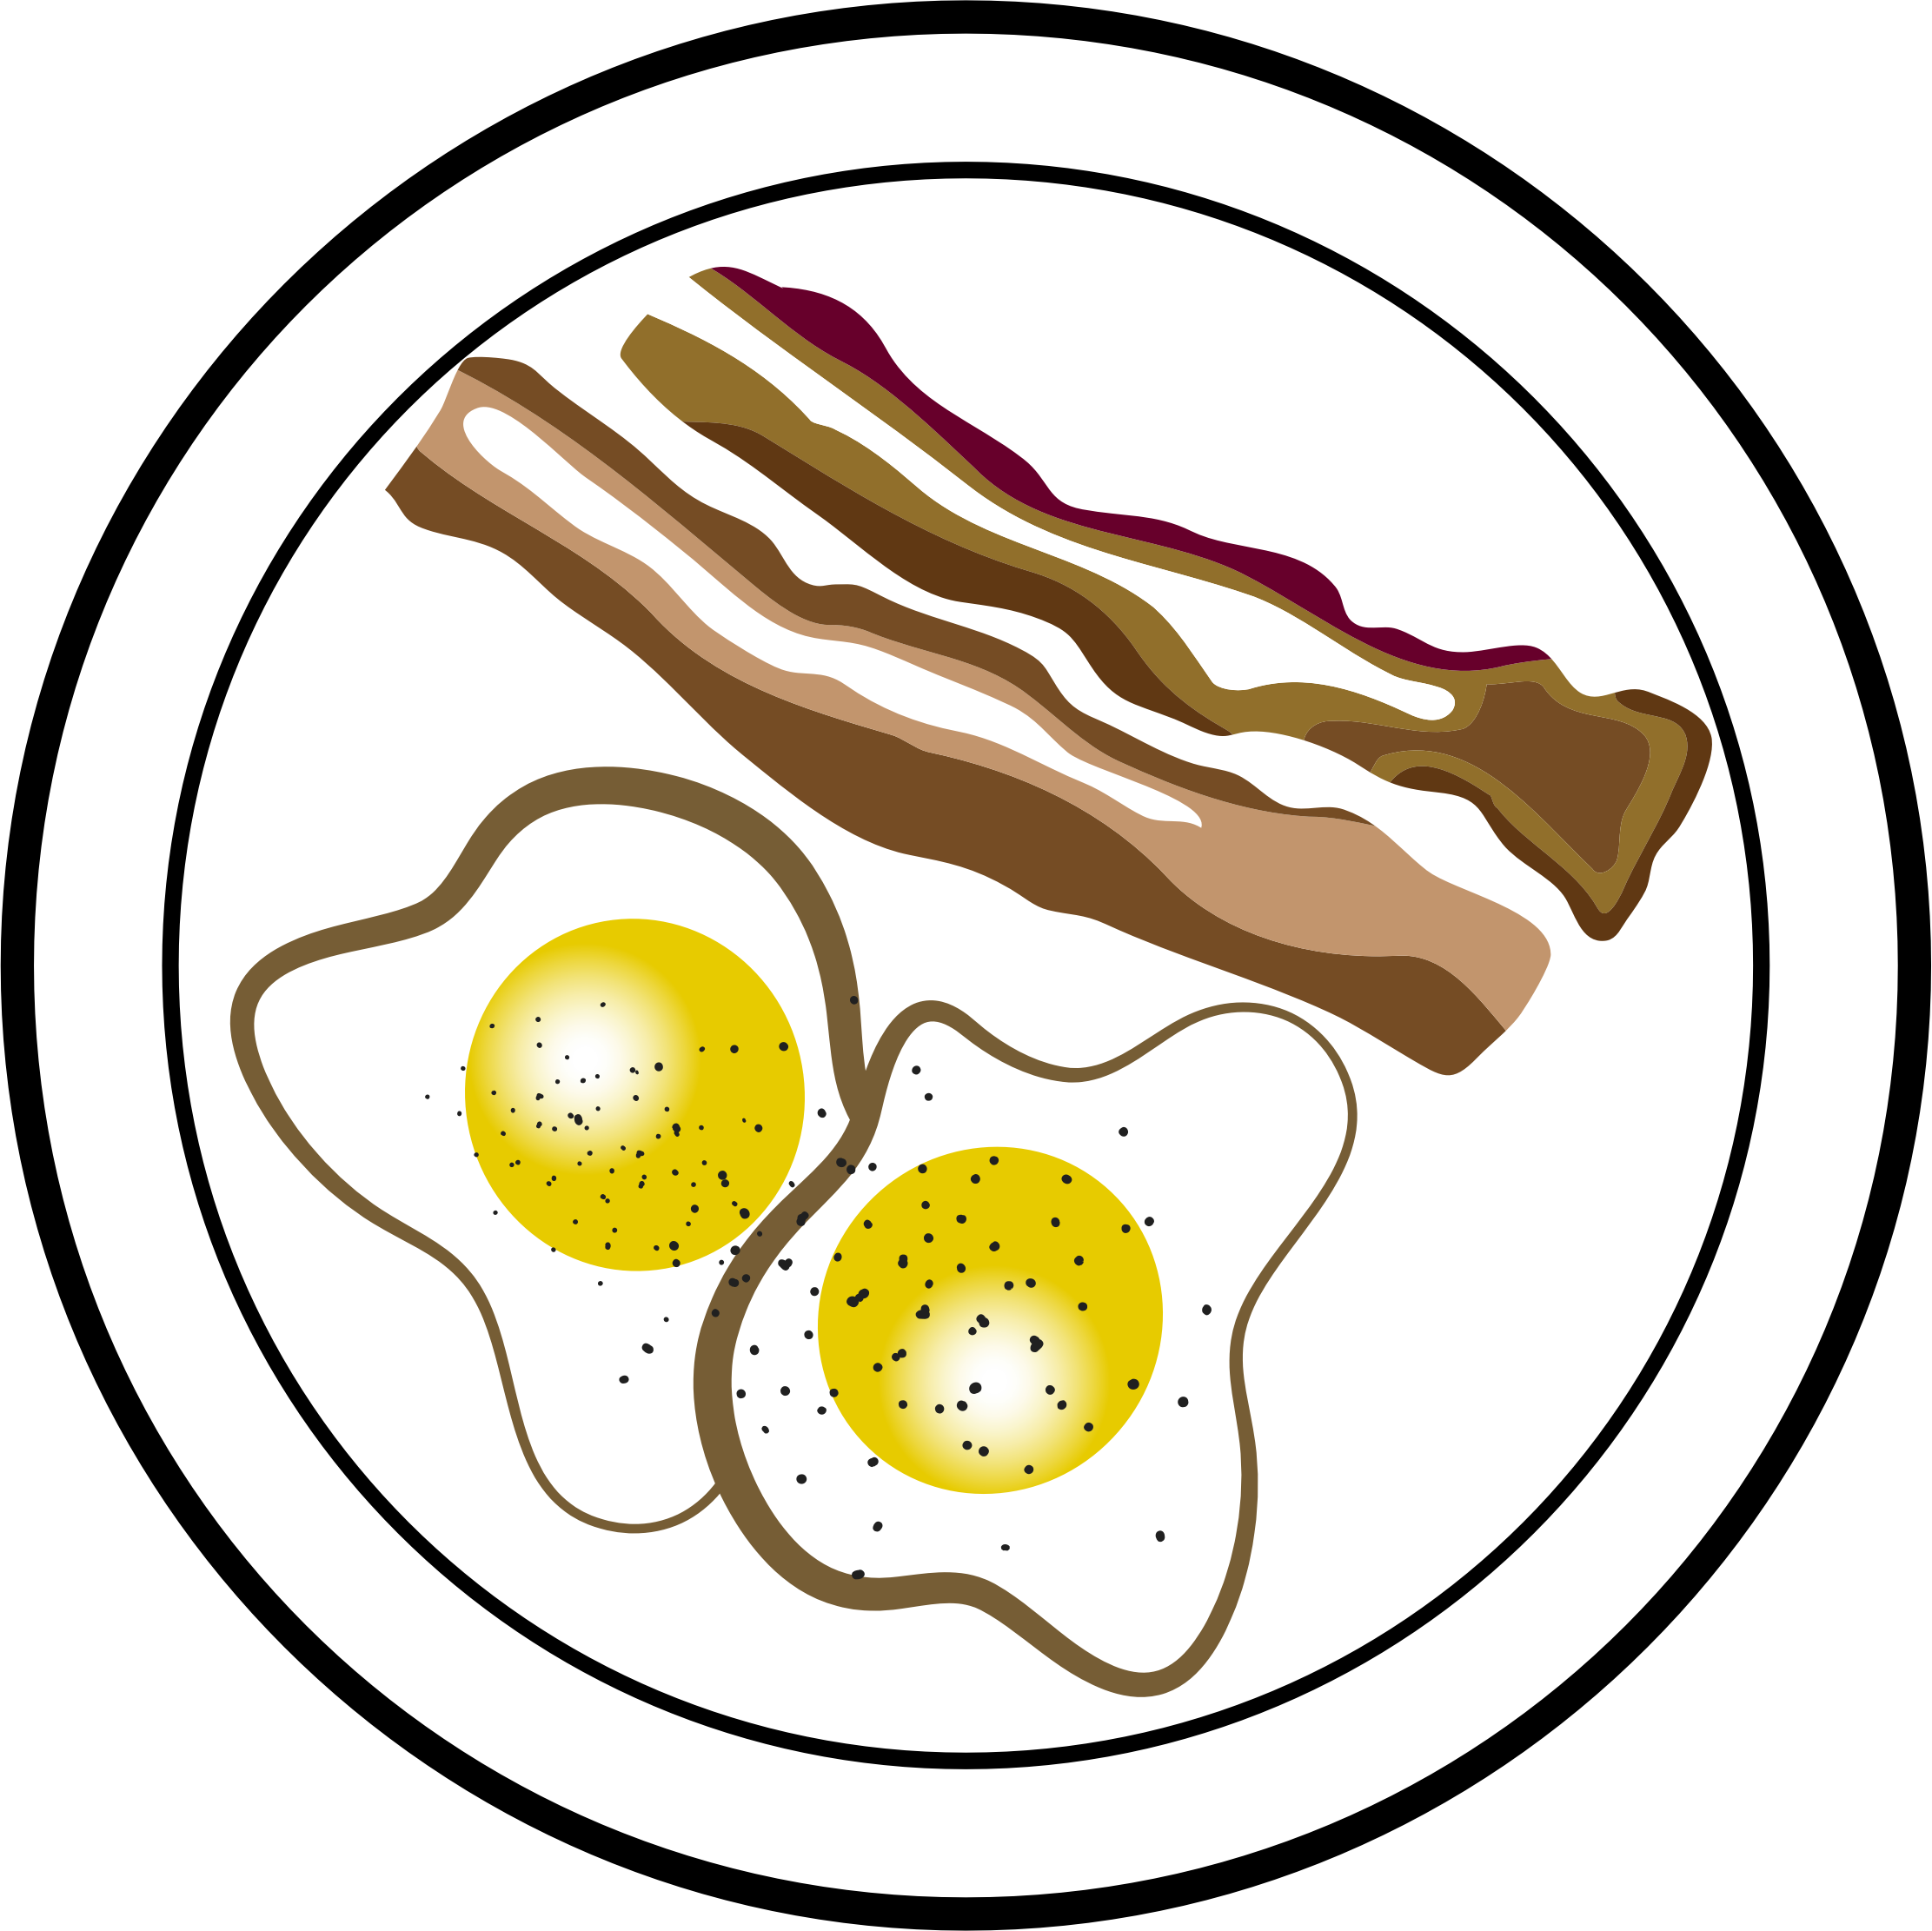 Bacon and Eggs Vector Clipart image.